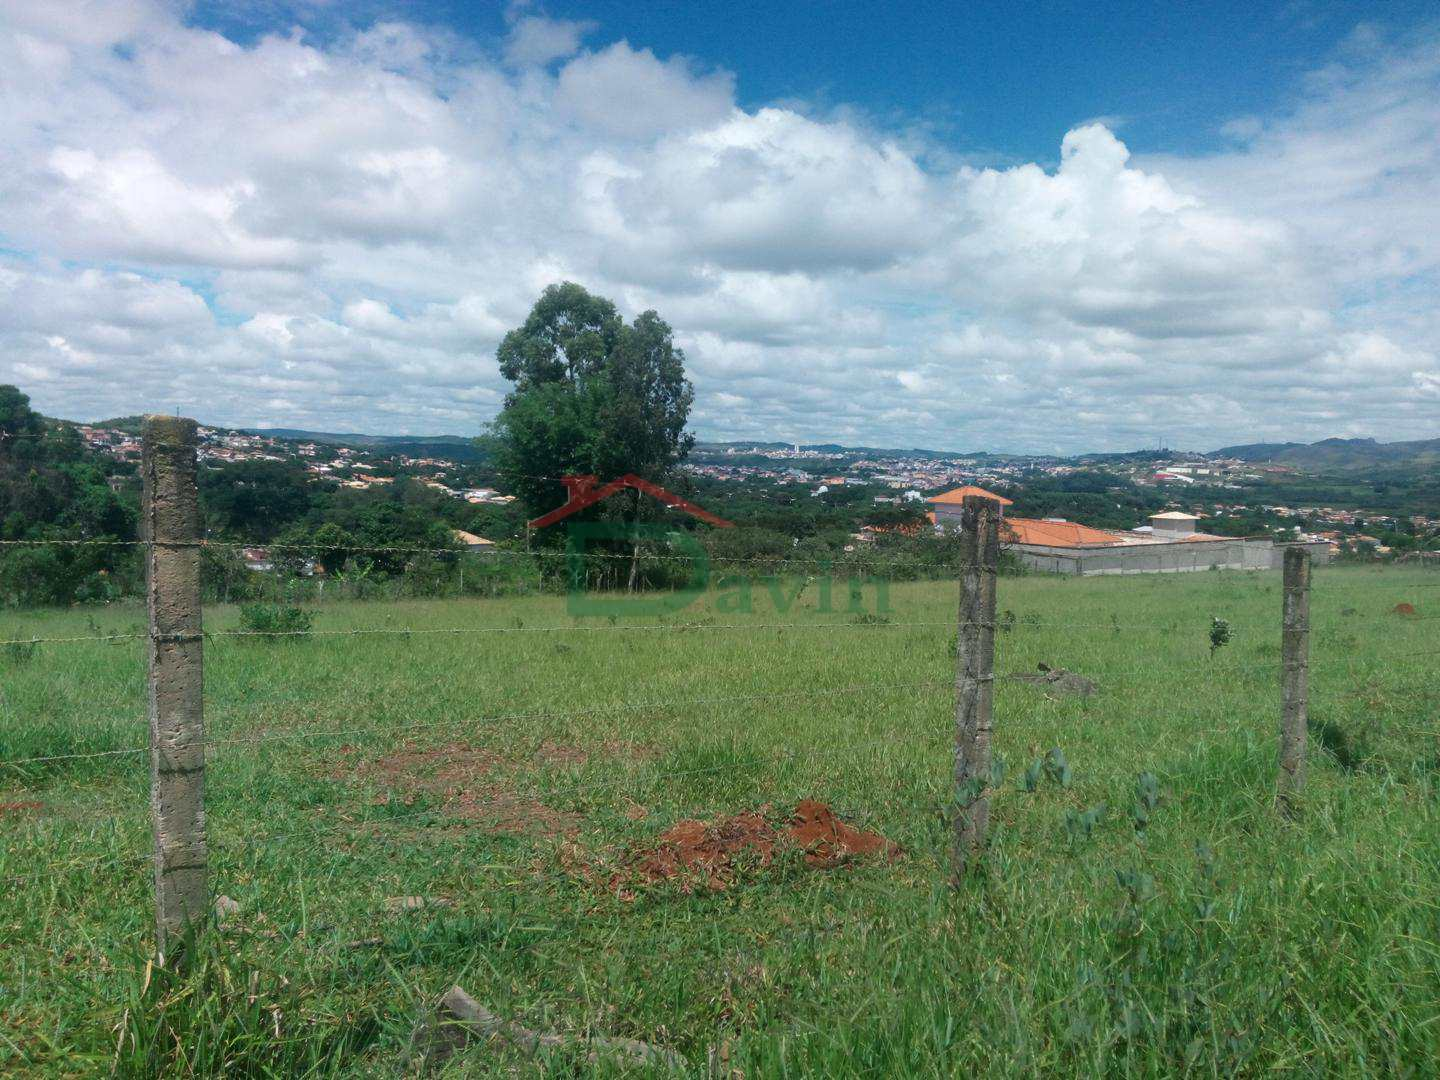 Terreno no Carmindo (Colônia do Marçal) - 1.000m² Valor 200mil